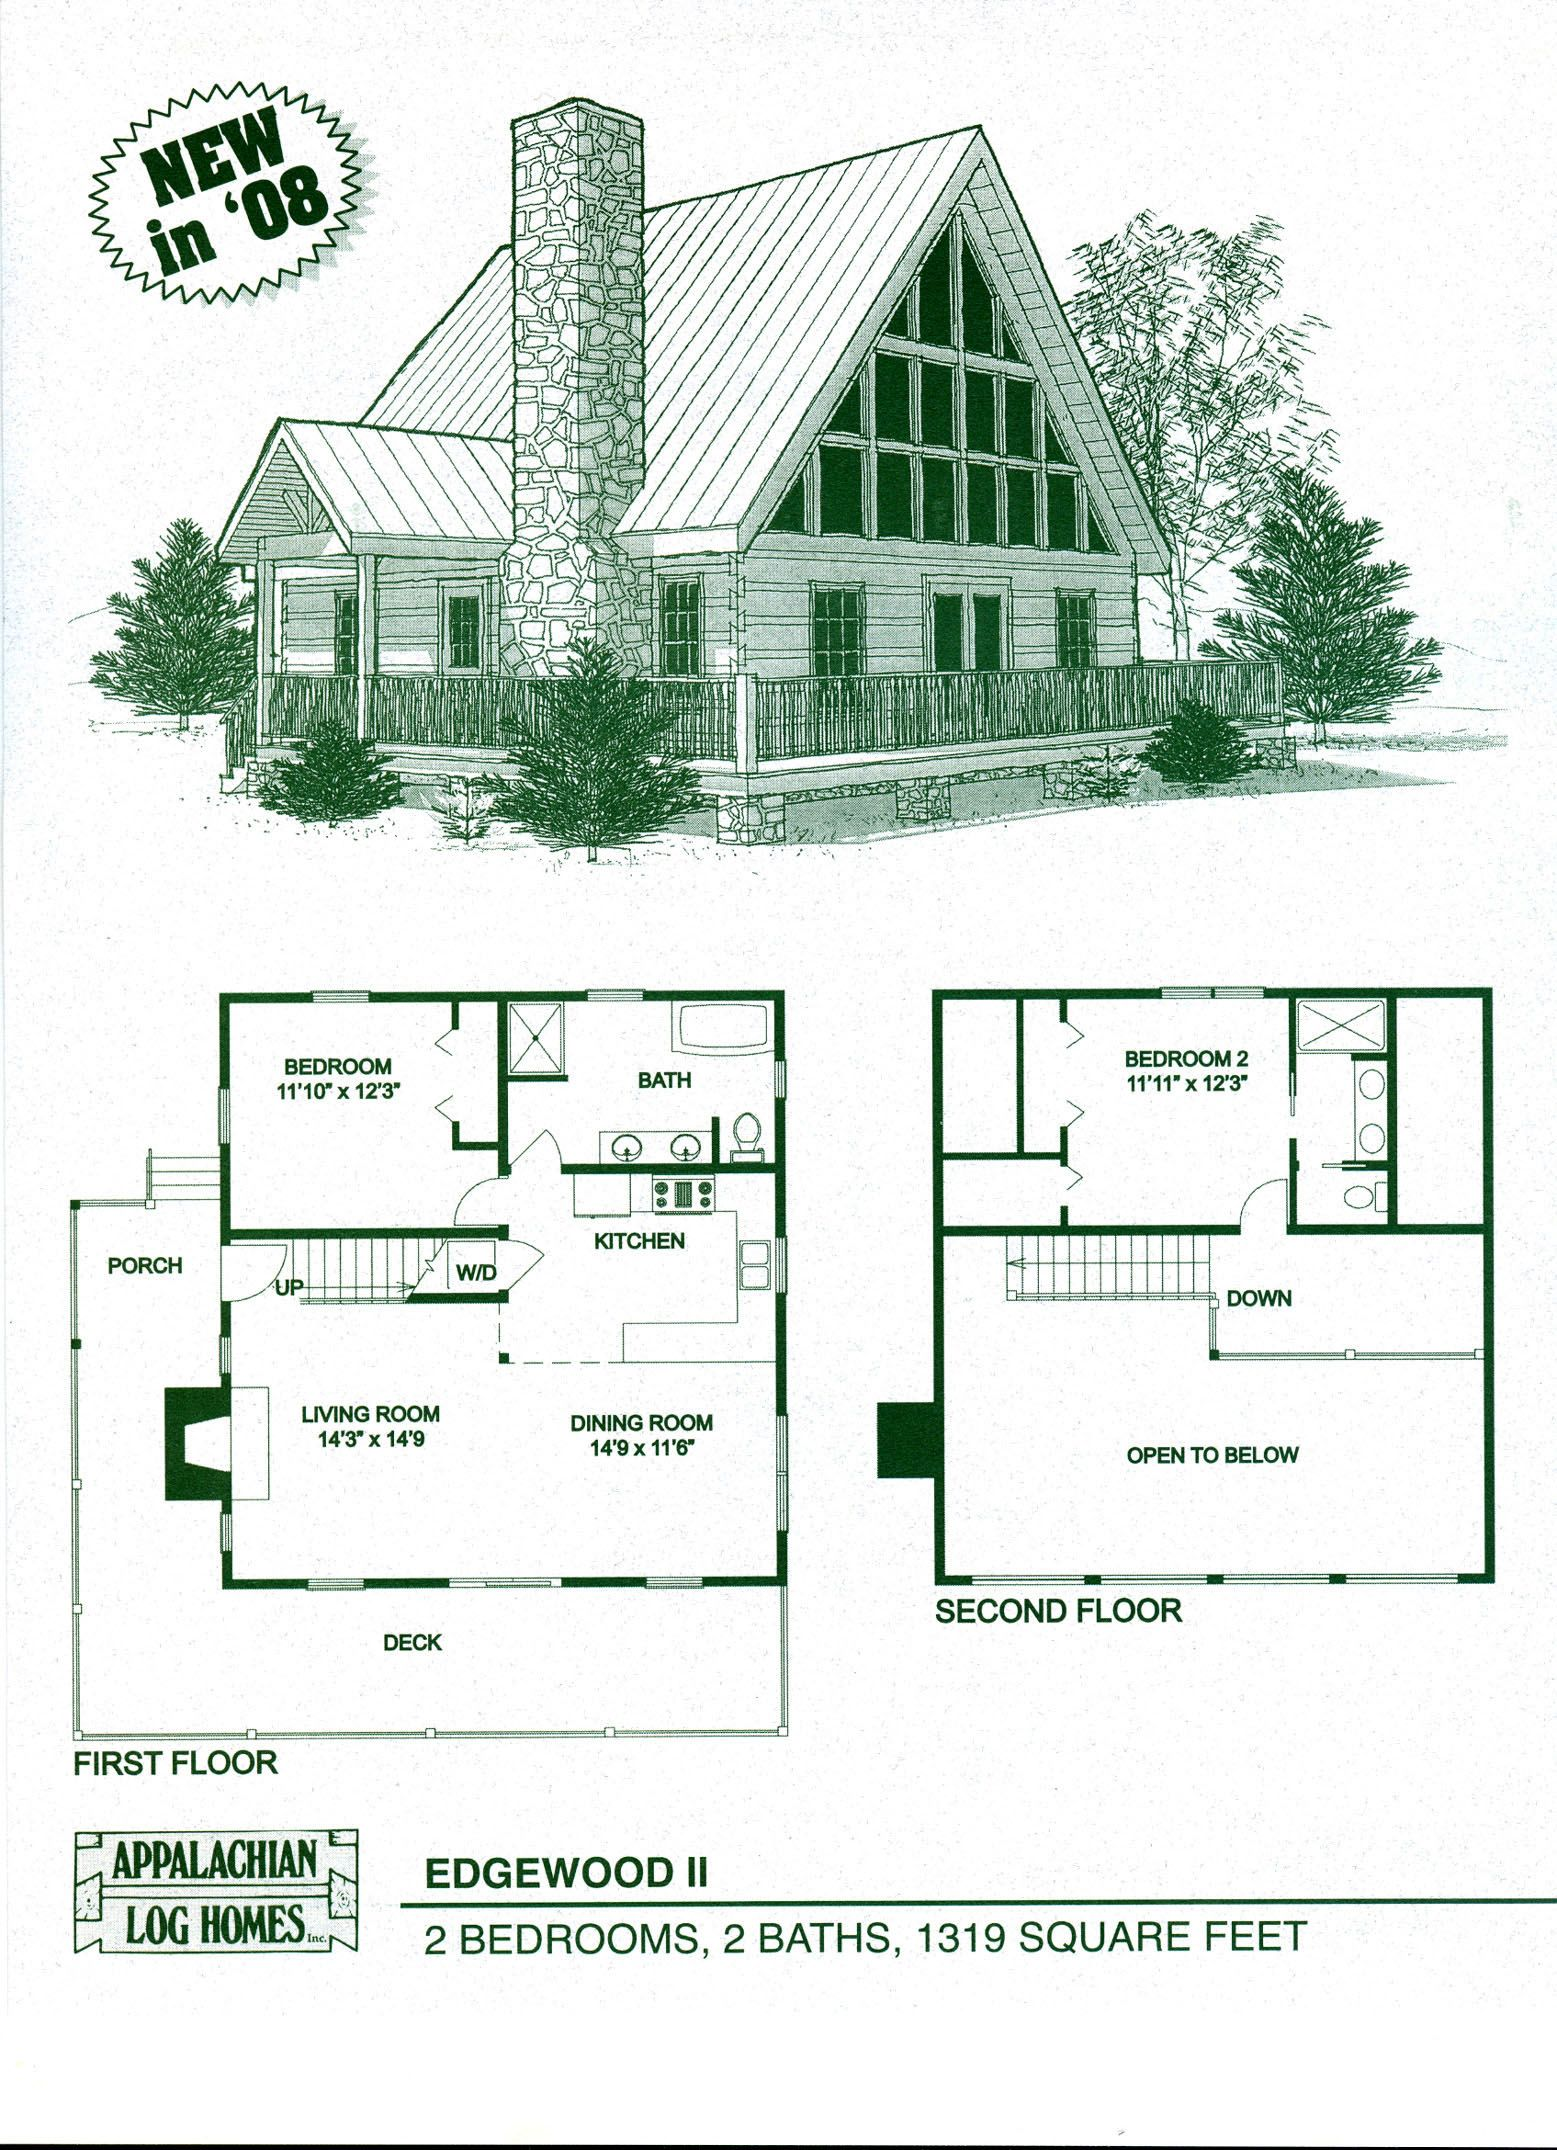 Log Home Floor Plans Log Cabin Kits Appalachian Log Homes Next House Pinterest Log